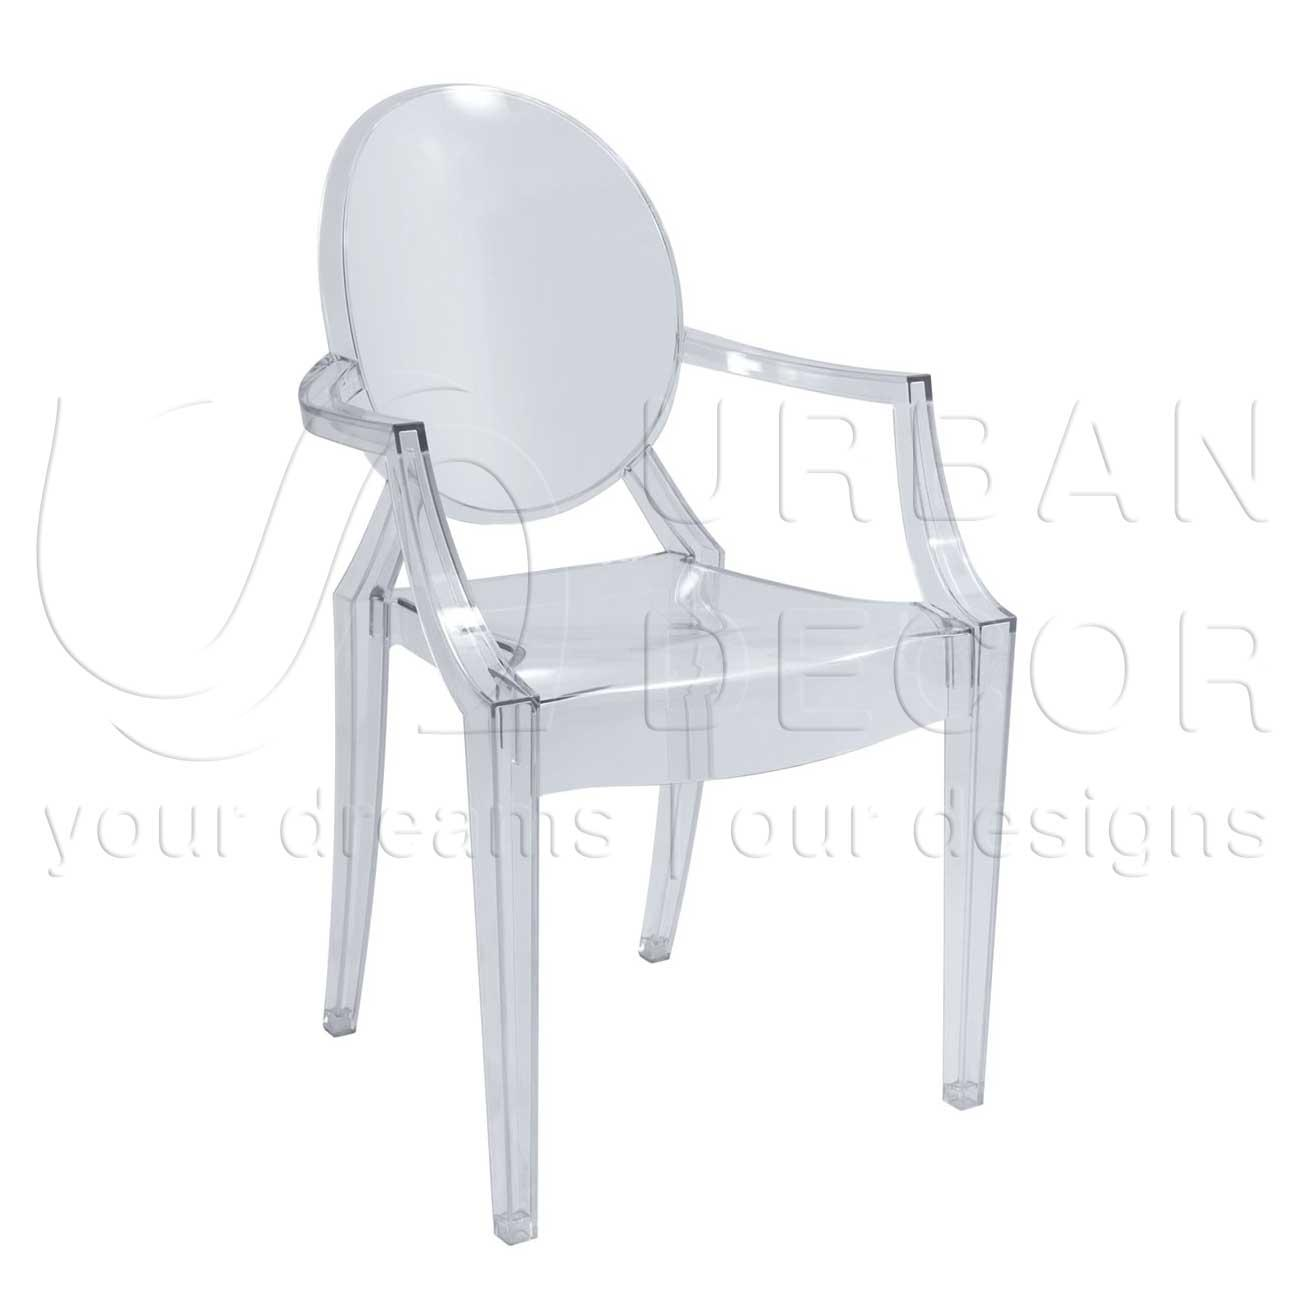 Clear Acrylic Chair Wedding Covers Hire Ipswich Cafeteria Chairs Ghost Polycarbonate